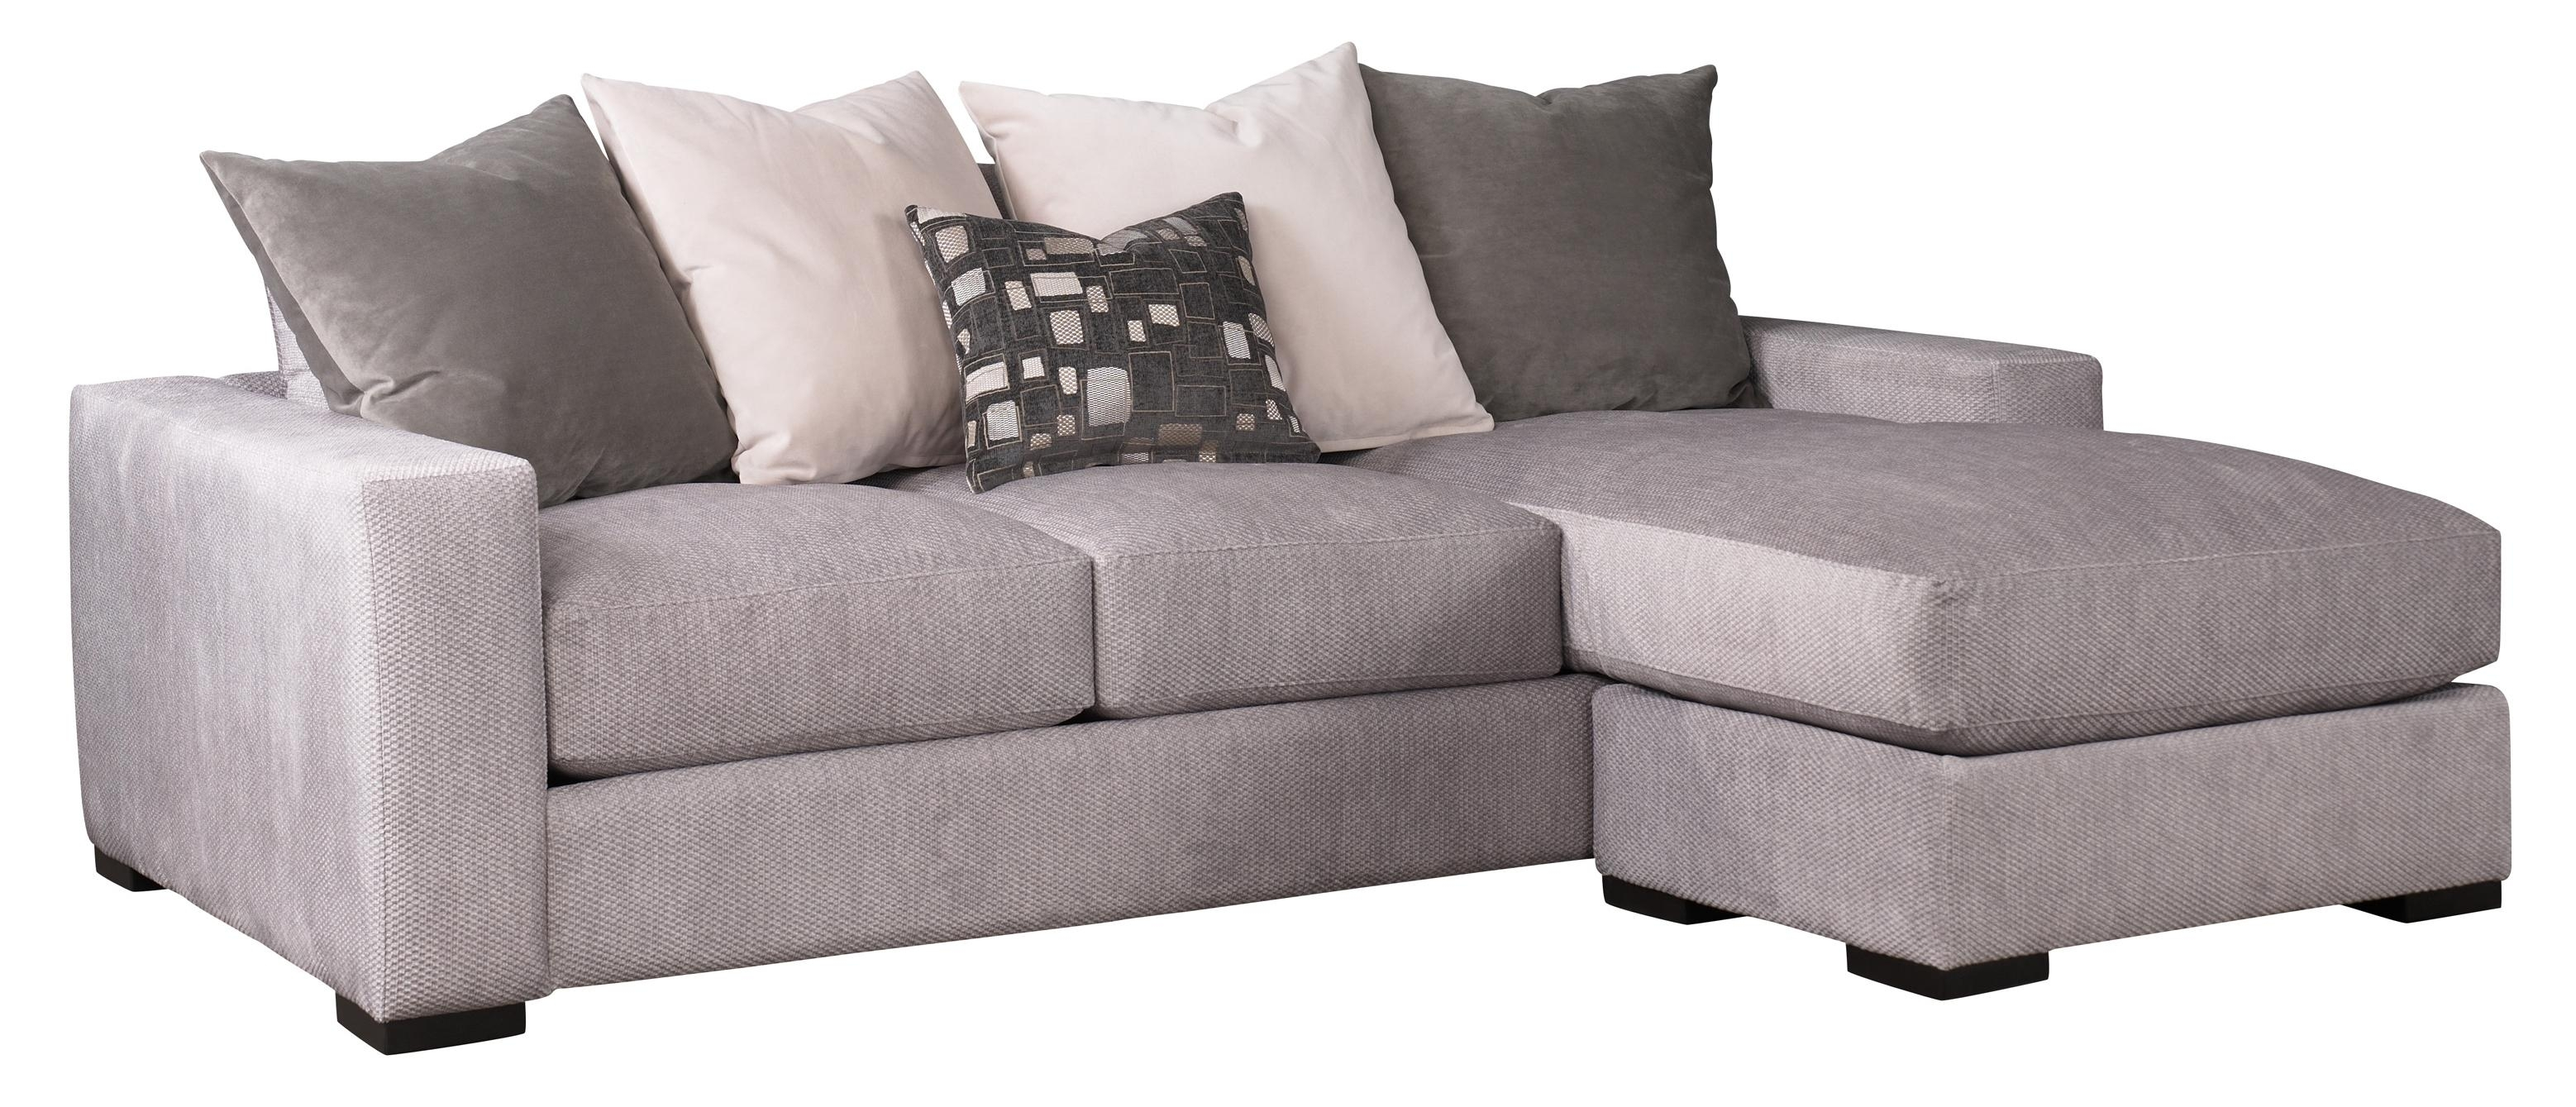 Jonathan Louis Lombardy 332-90A+90B Contemporary Sofa W/ Reversible inside Burton Leather 3 Piece Sectionals (Image 13 of 30)